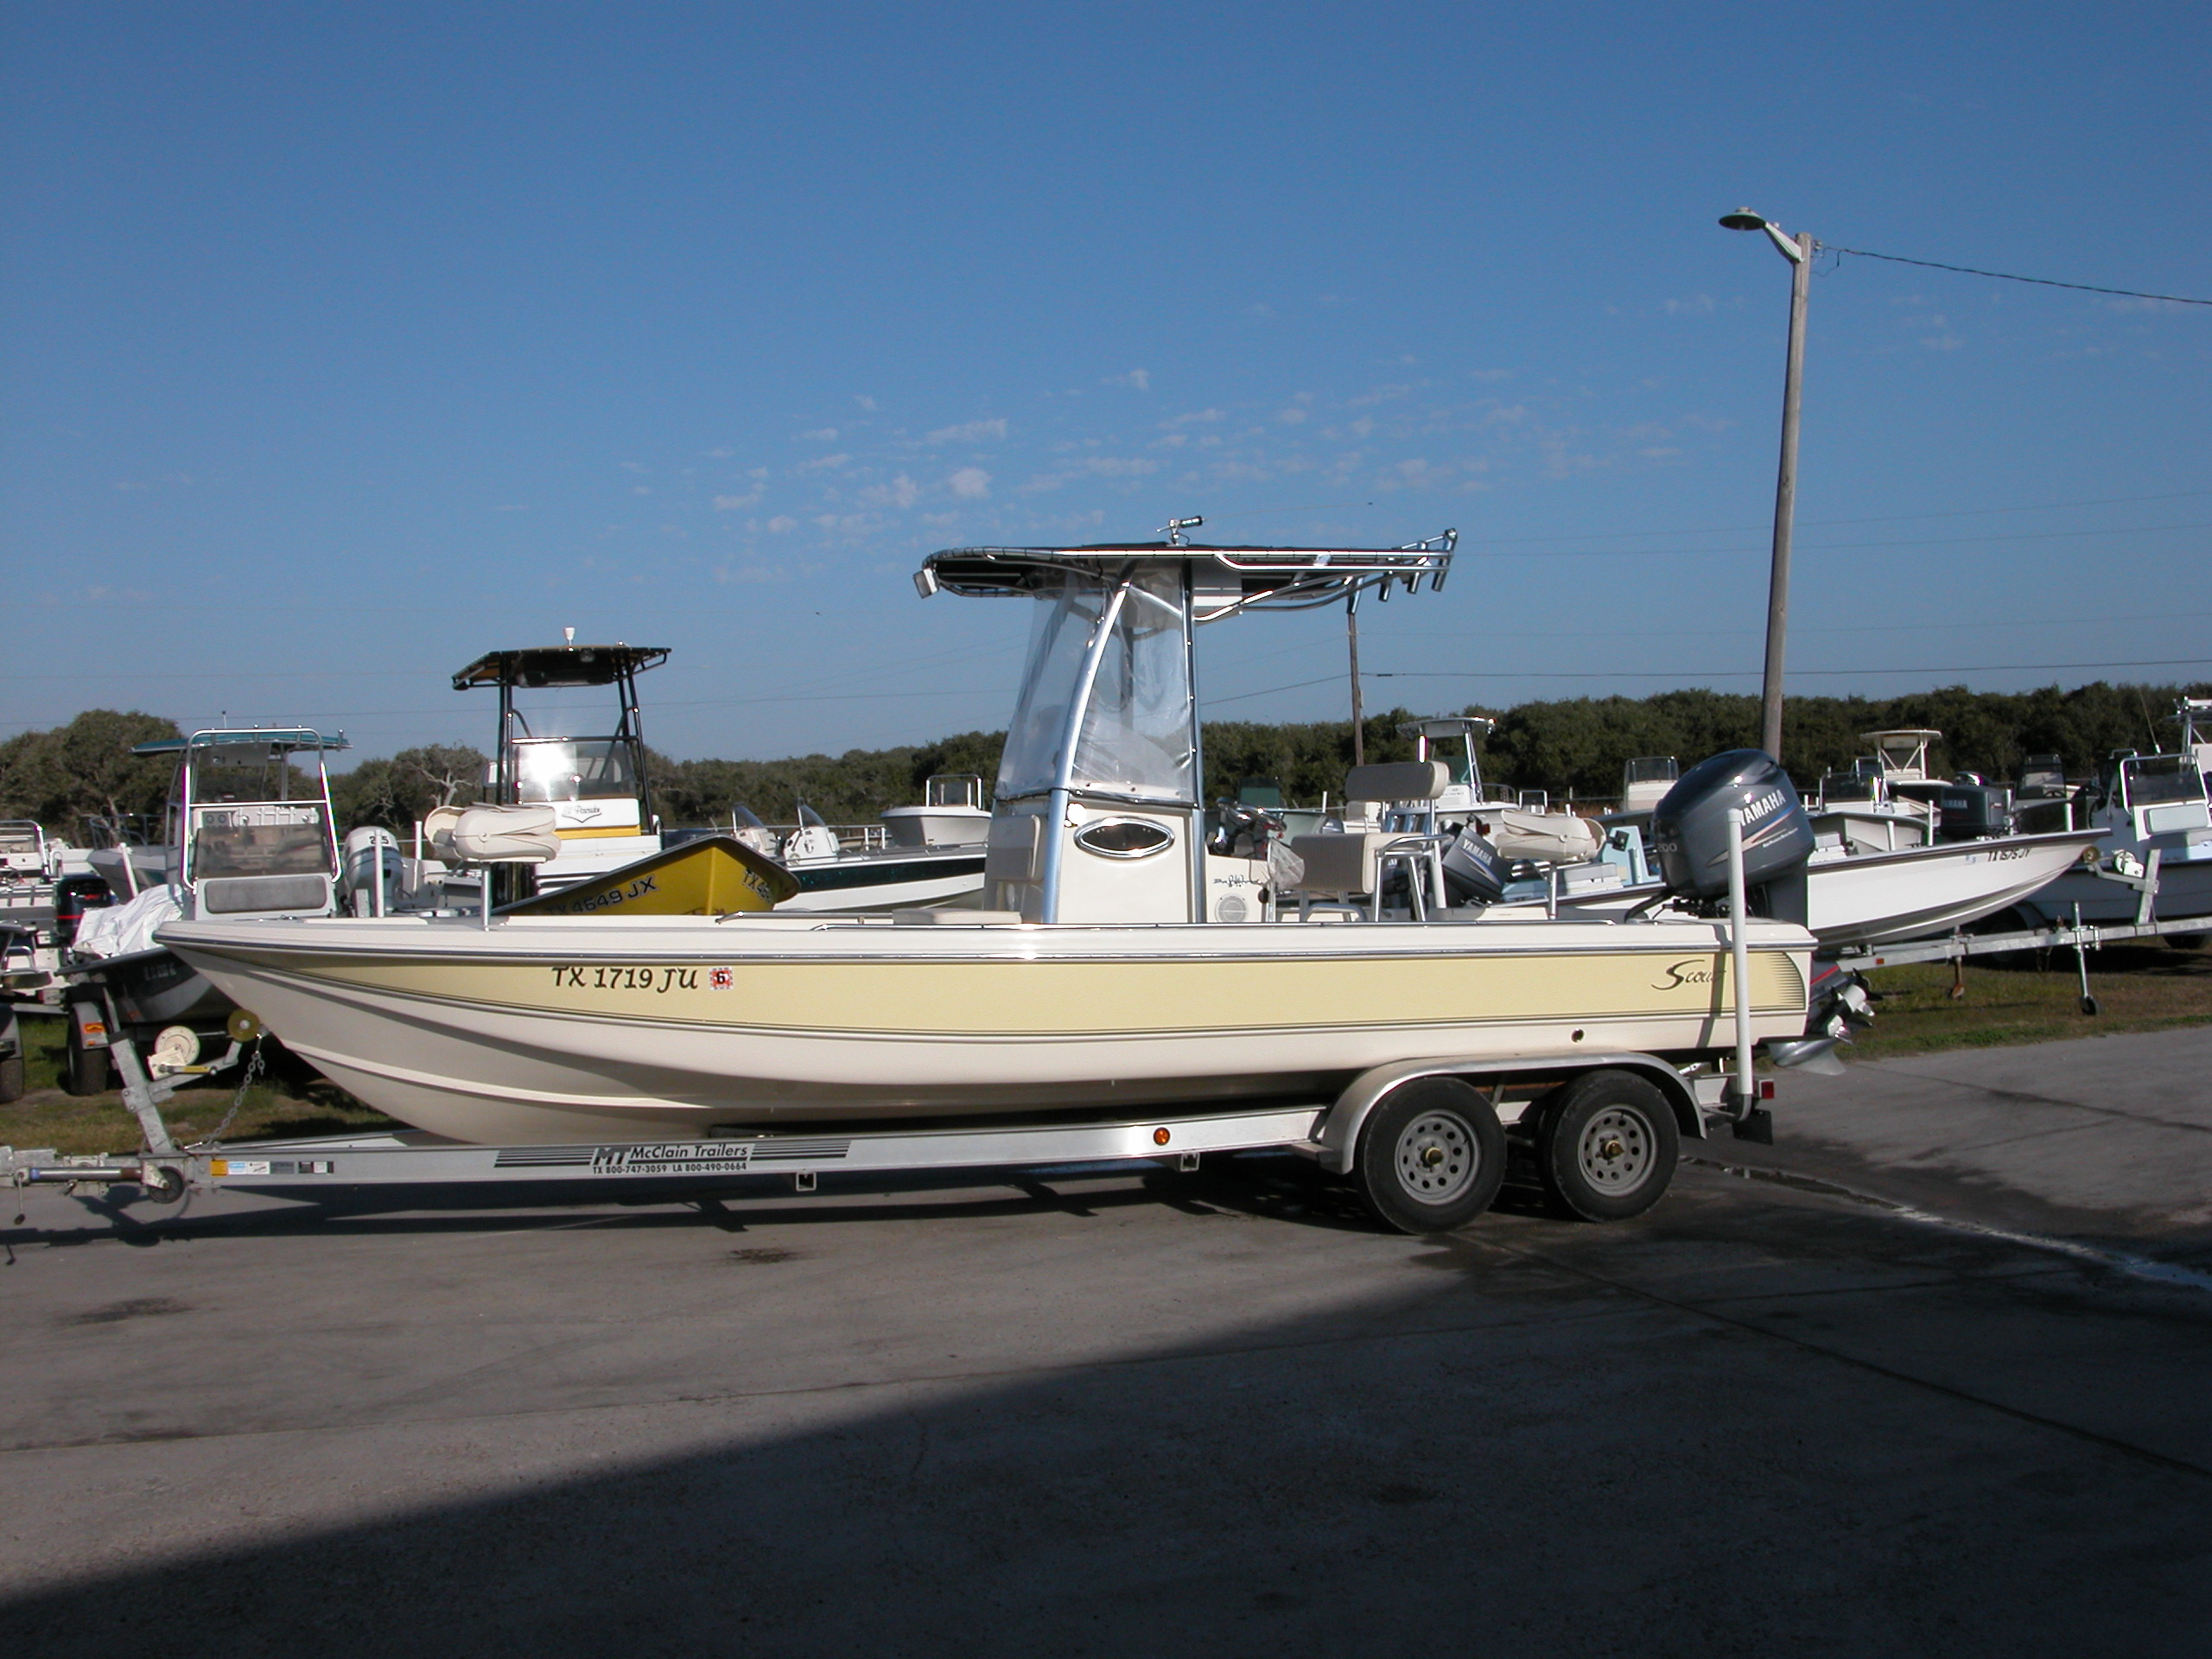 Fishing boats for sale in san antonio used boats on html for Fishing boats for sale in iowa